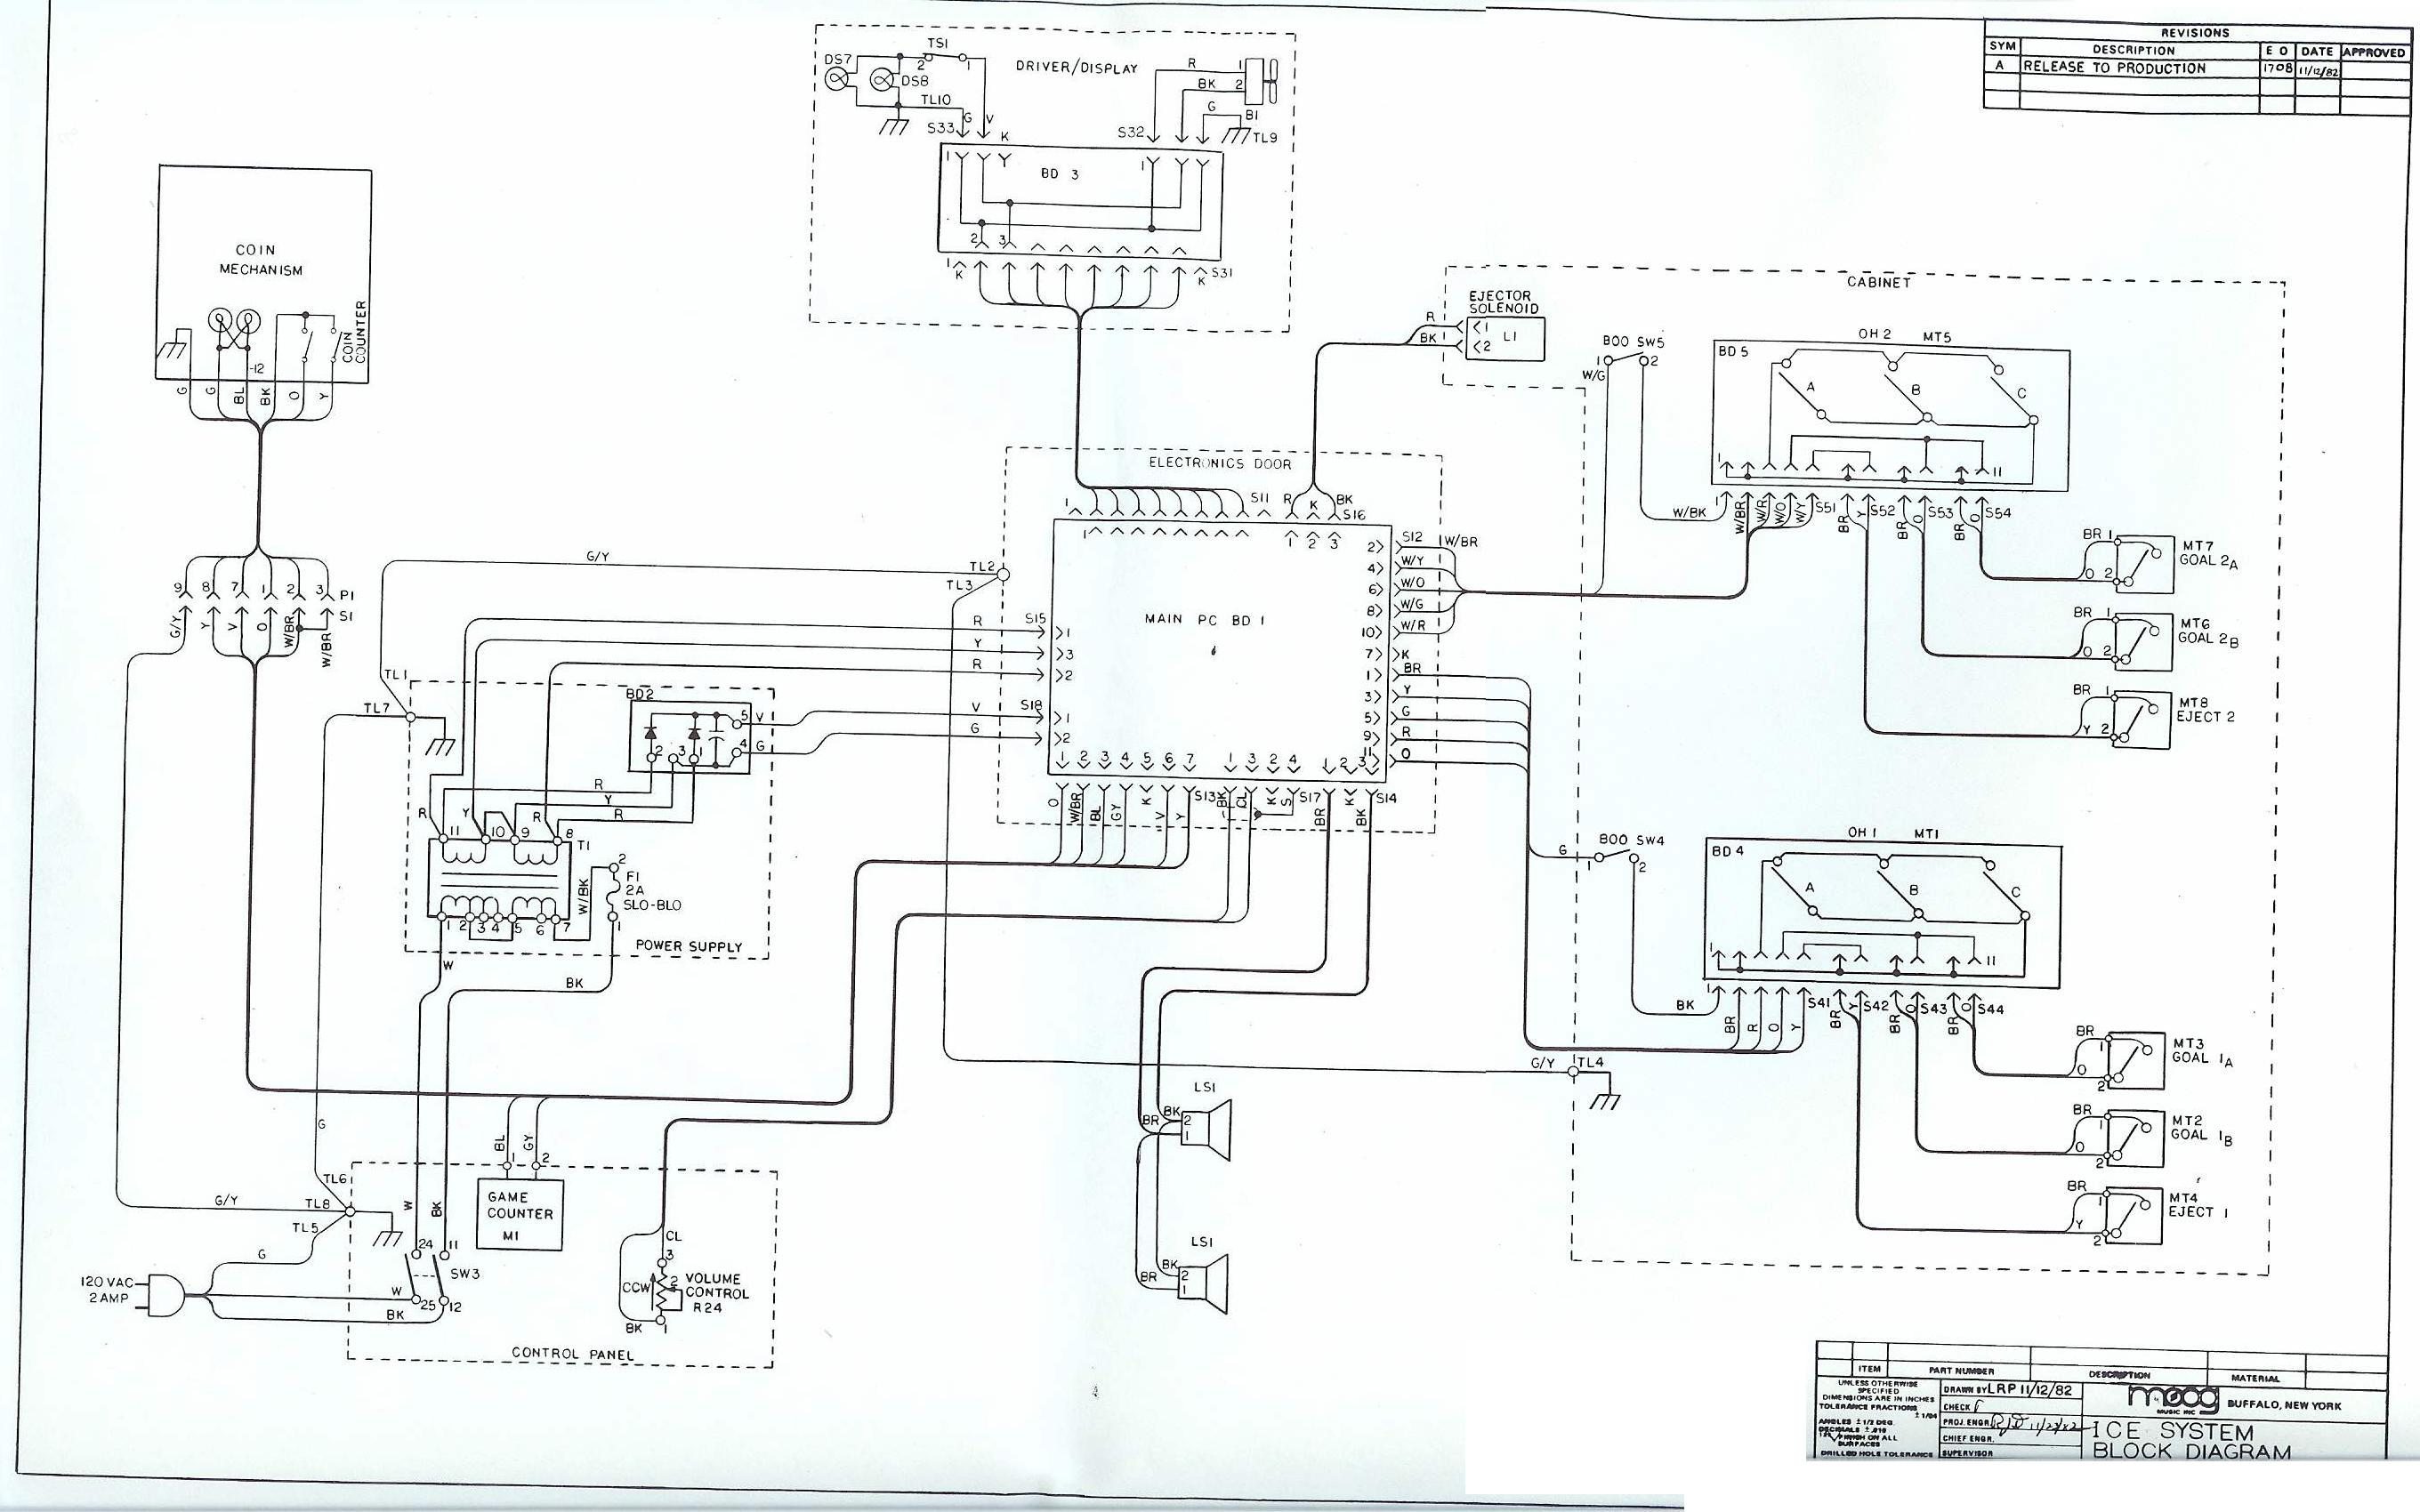 for volume control wiring diagram on potentiometer wiring diagram